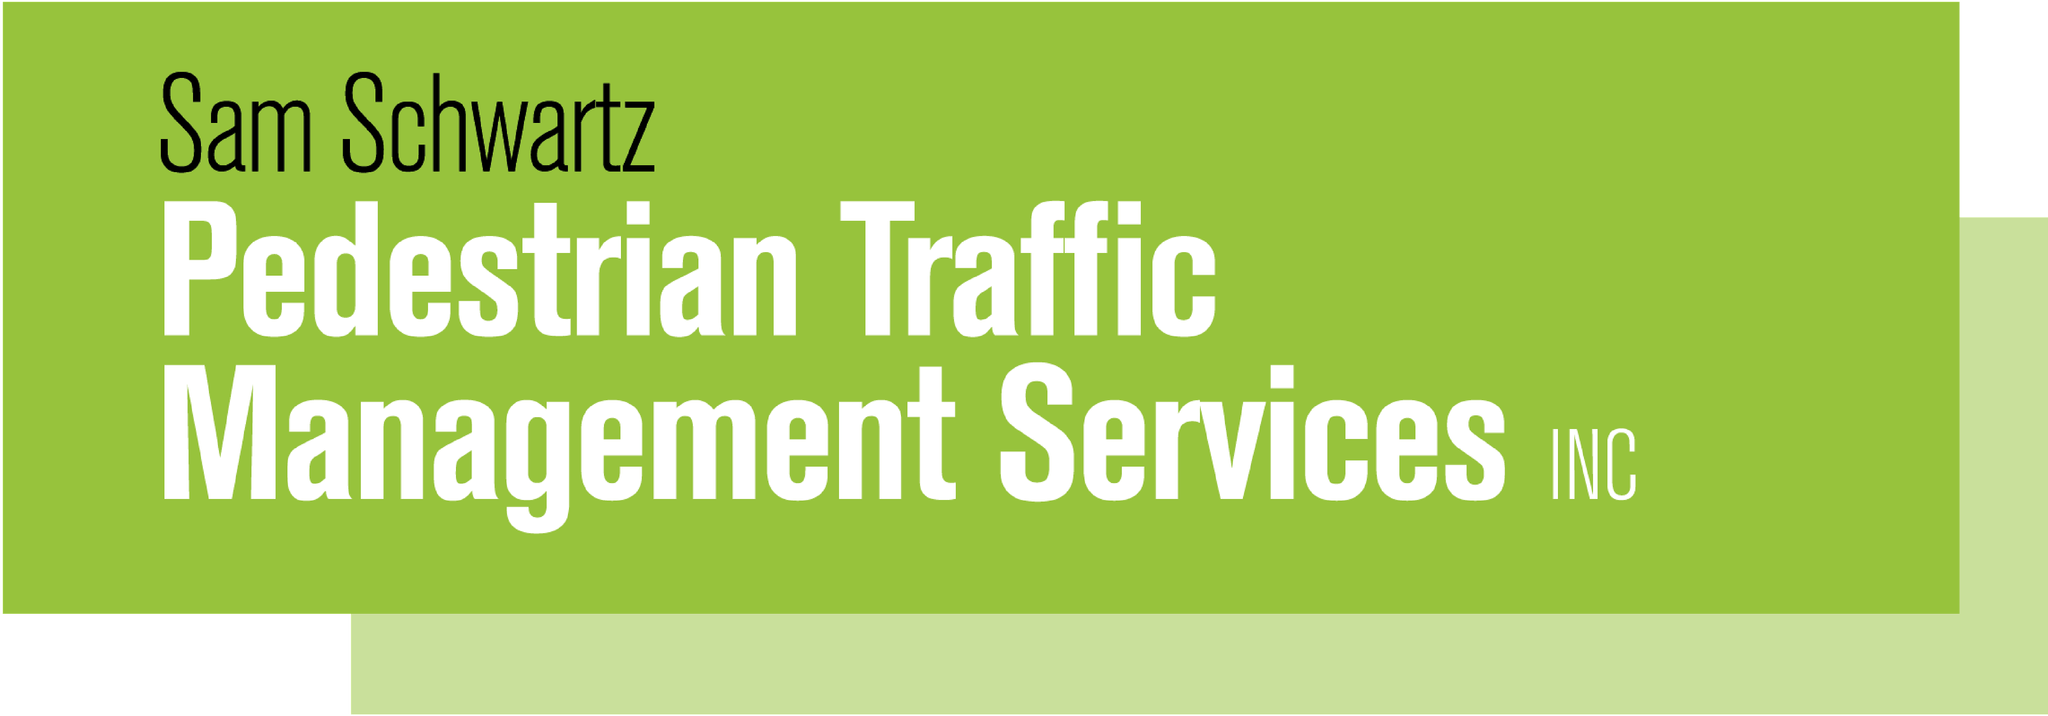 Sam Schwartz Pedestrian Traffic Management Services, Inc